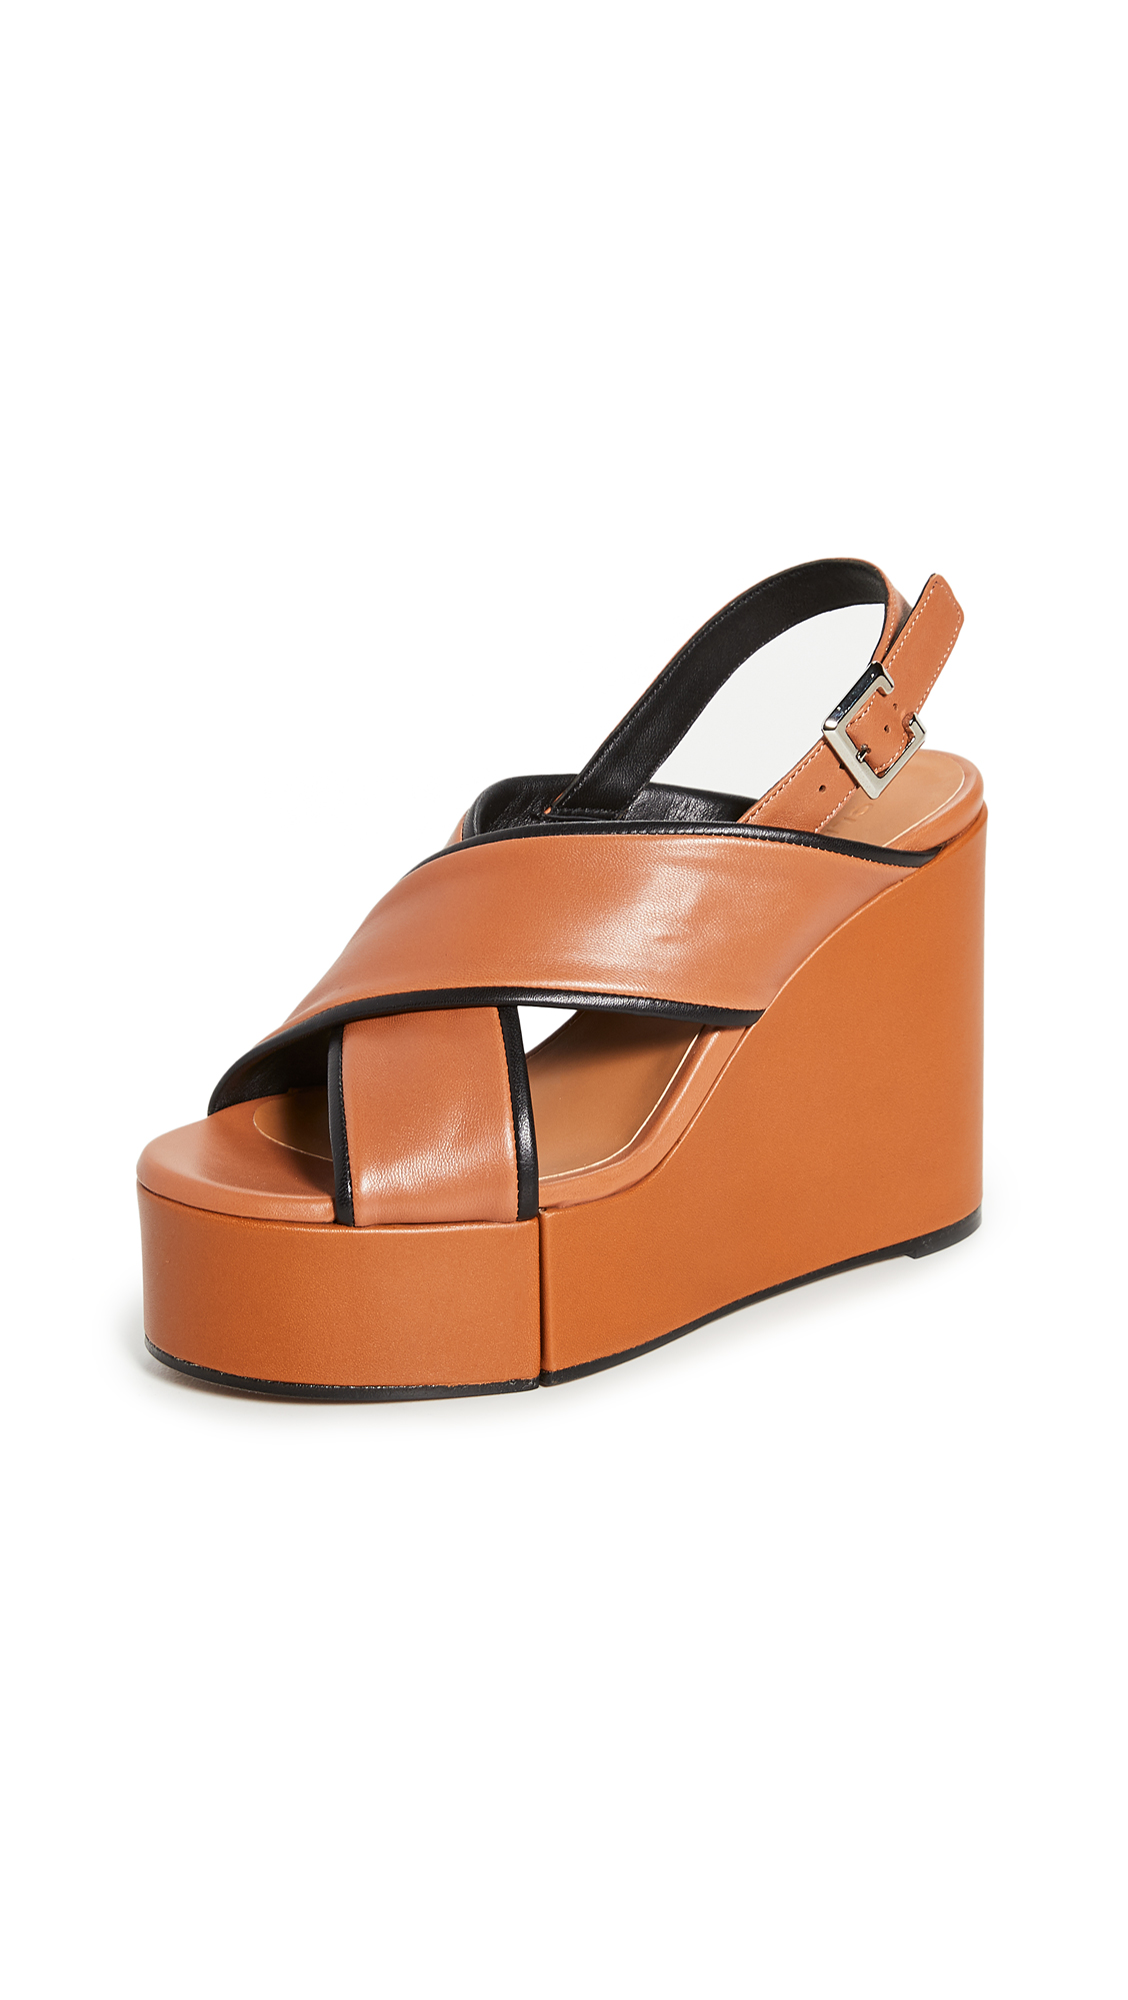 Buy Clergerie Mirane Wedge Sandals online, shop Clergerie